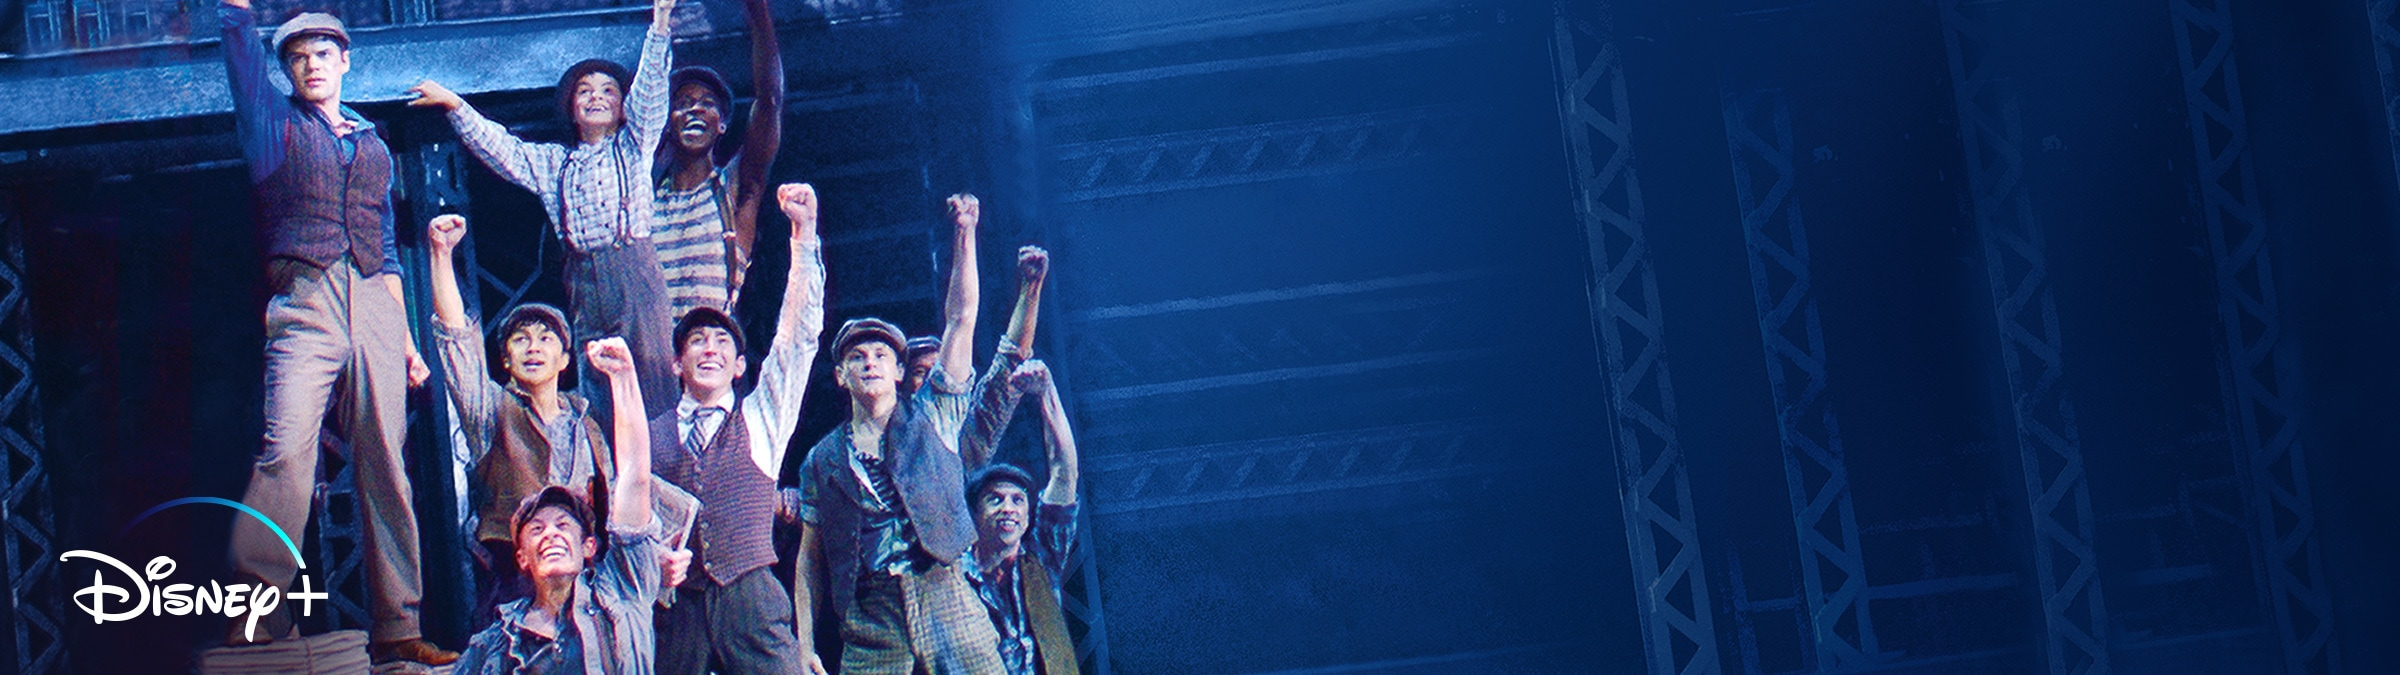 Newsies: The Broadway Musical is now streaming on Disney+